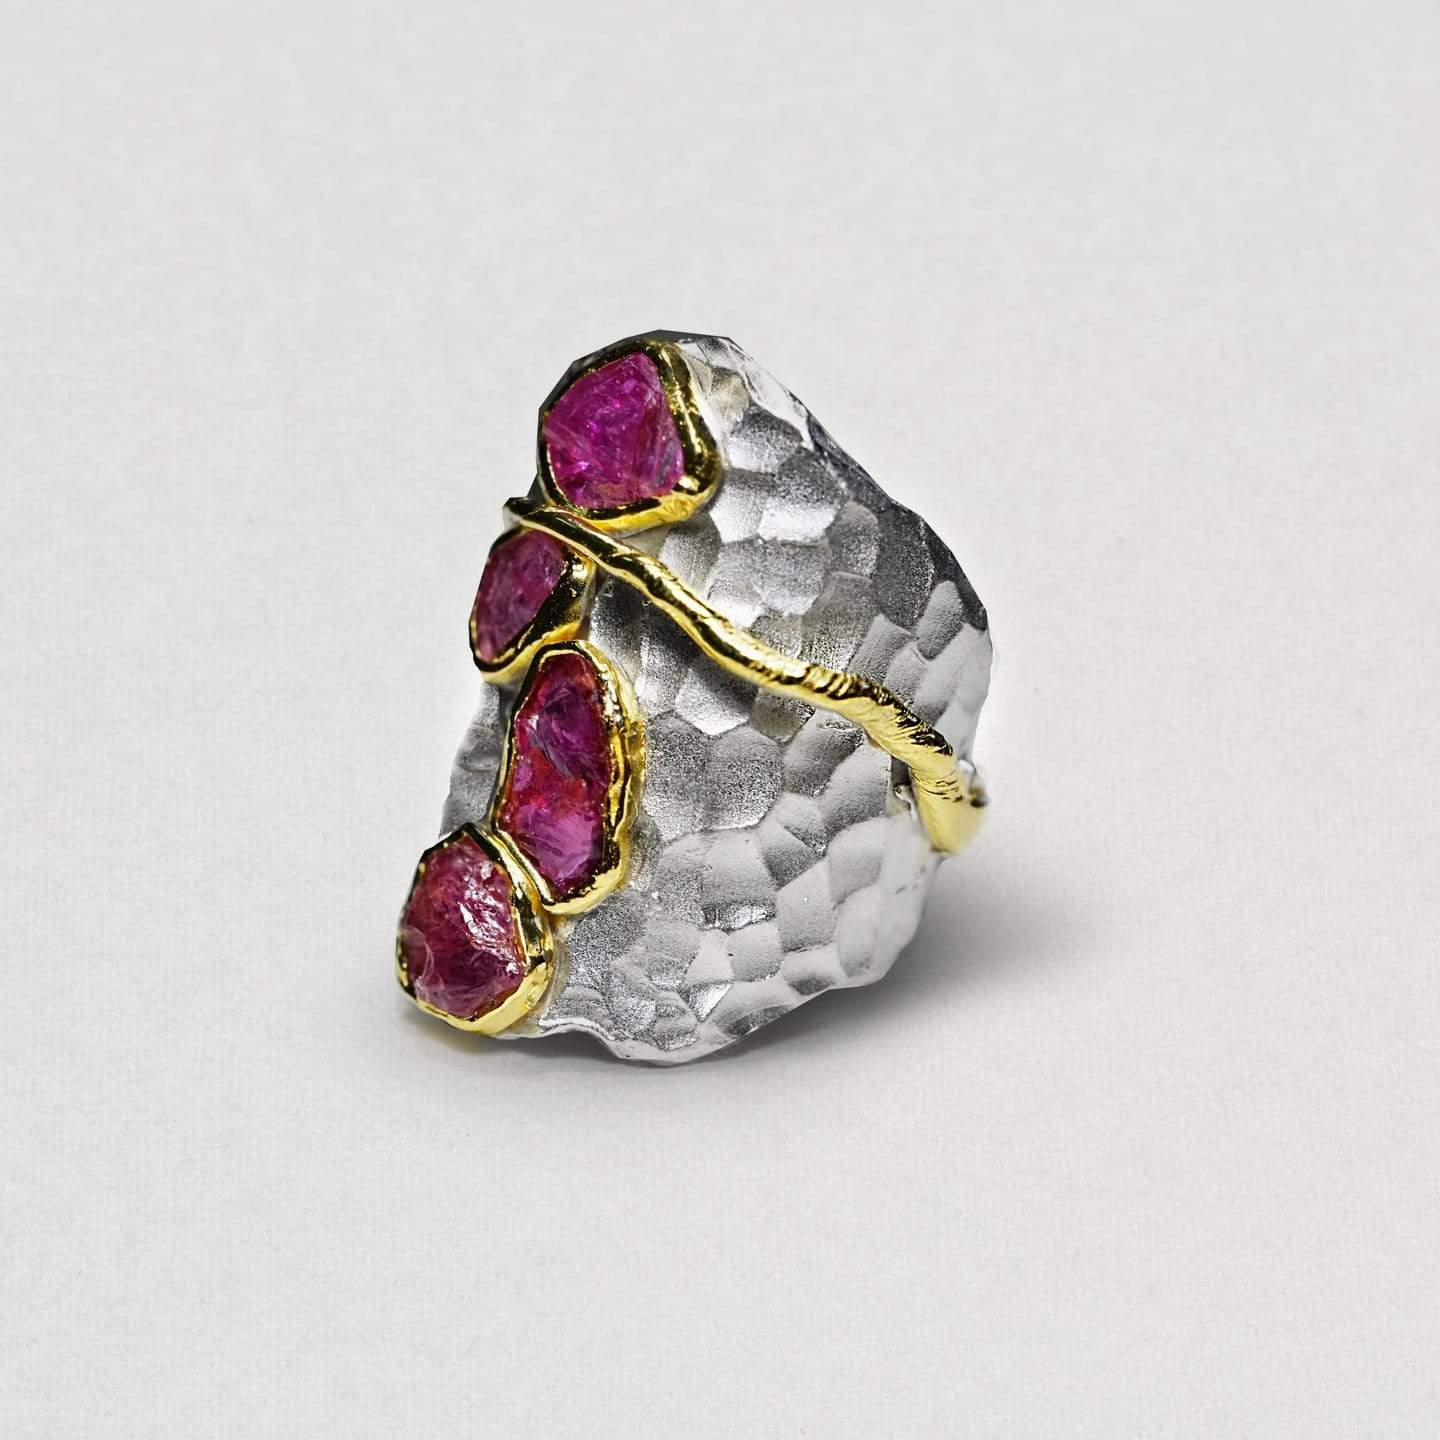 Quintila Ring, Gold, Handmade, Rhodium, Ruby, silver, spo-disabled, StoneColor:PinkRuby, Style:Everyday, Type:StoneCandyScattered Ring